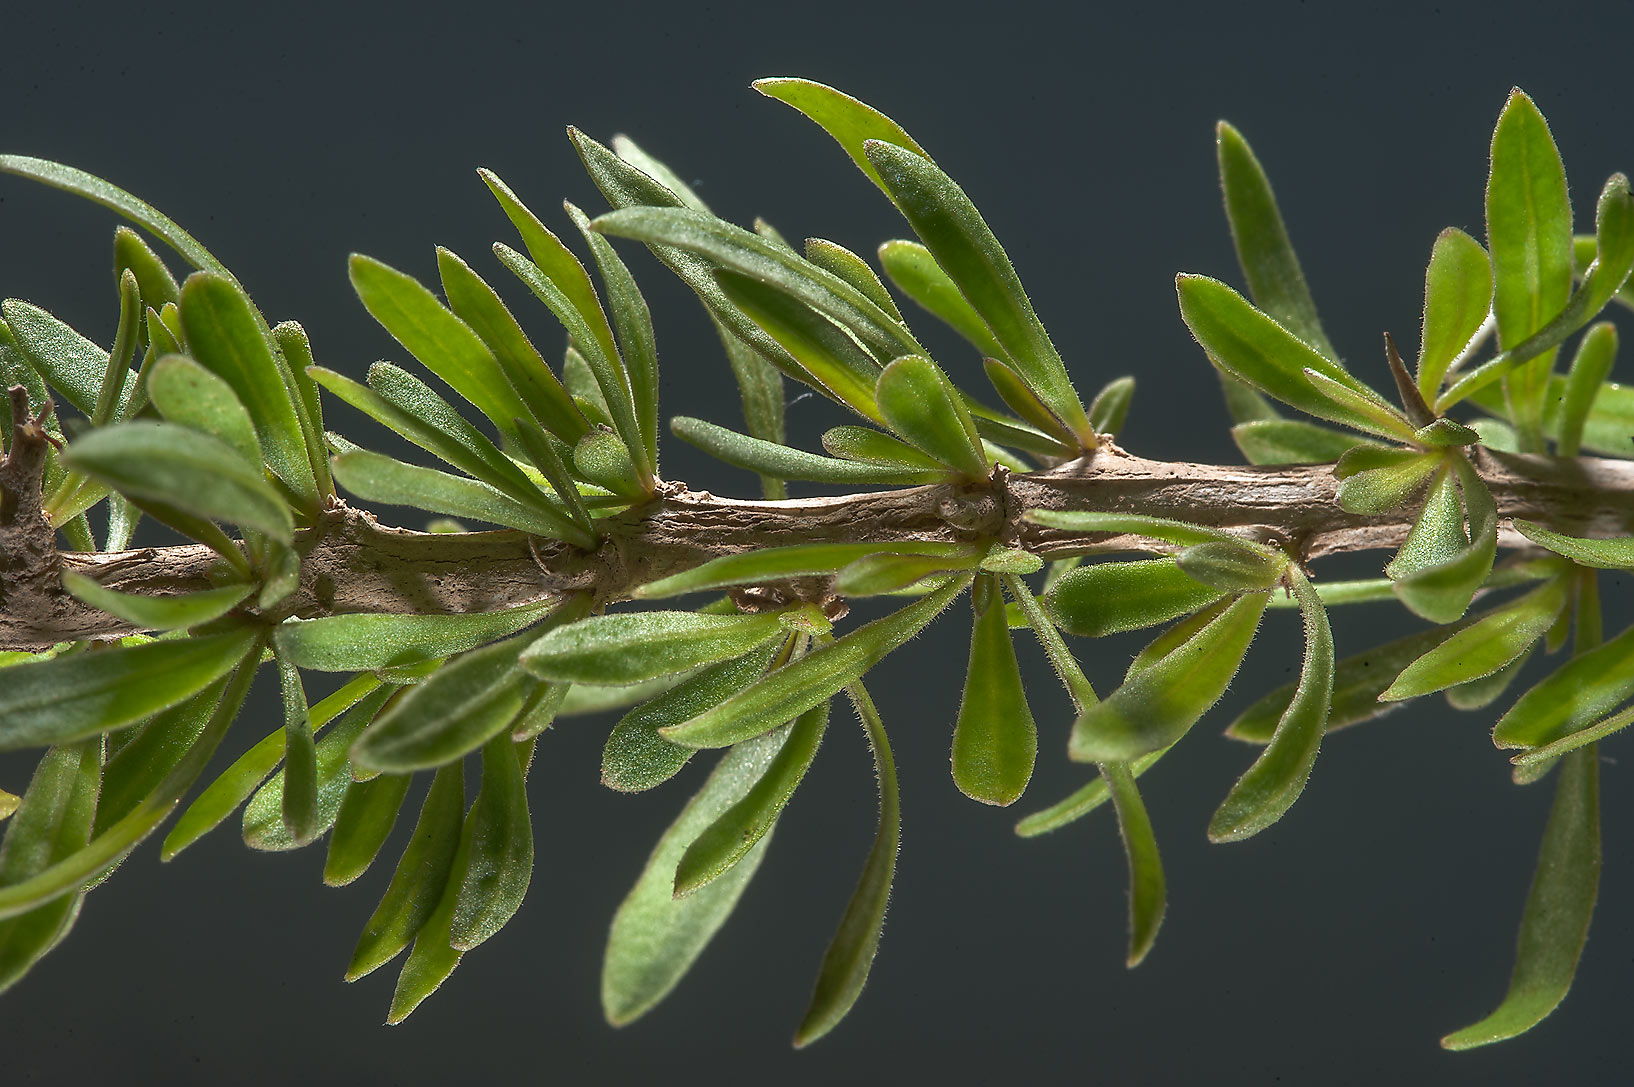 Twig of desert thorn (Lycium shawii) with fresh leaves near Zubara. Northern Qatar